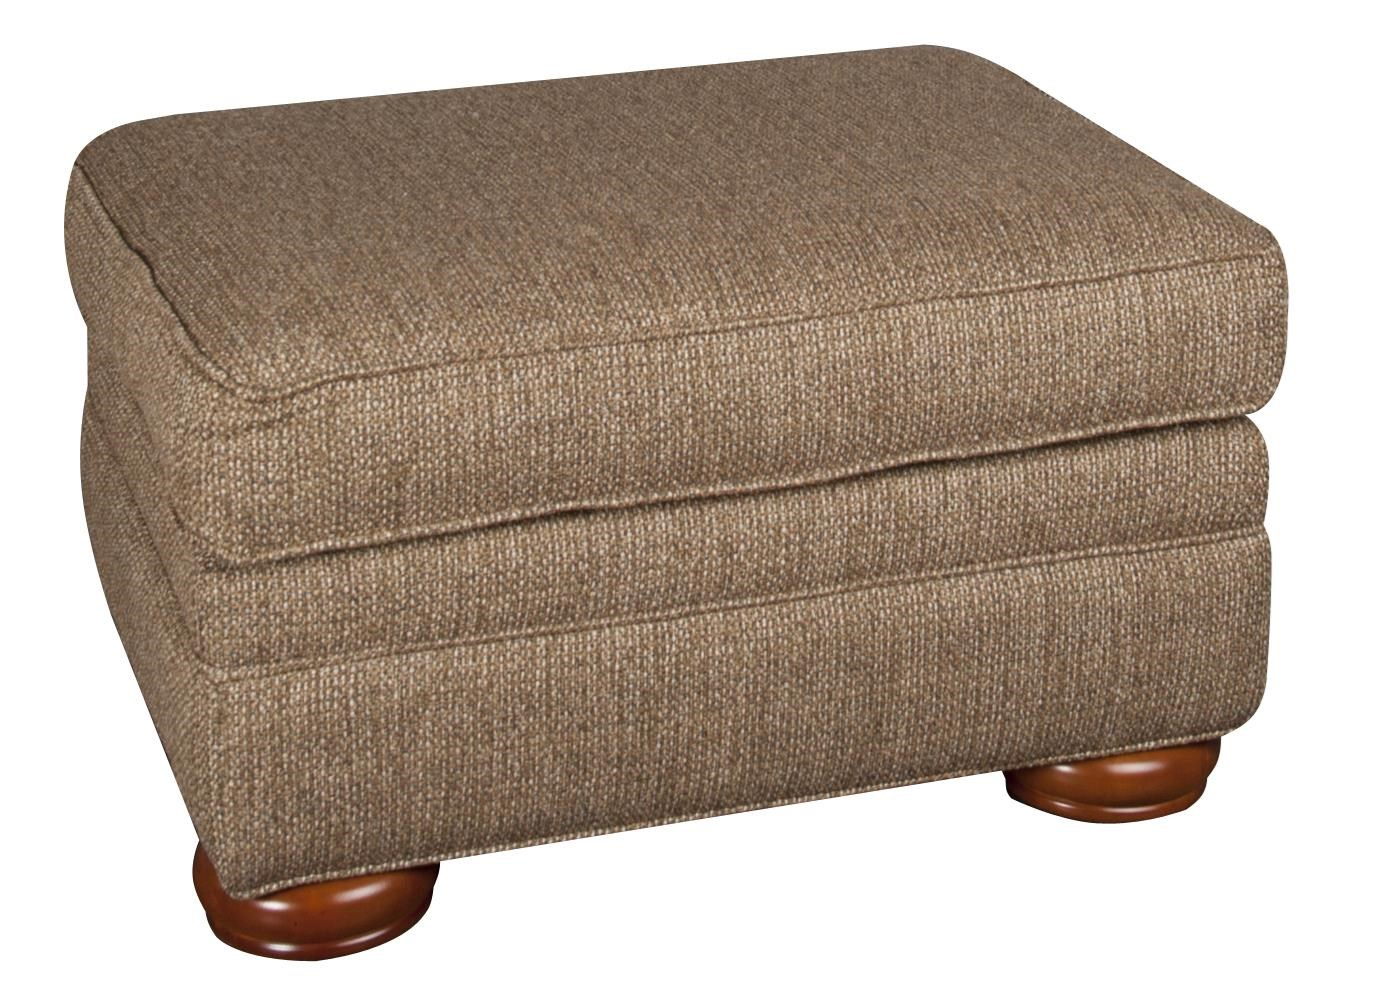 Morris Home Furnishings Rosemary Rosemary Ottoman - Item Number: 116203223